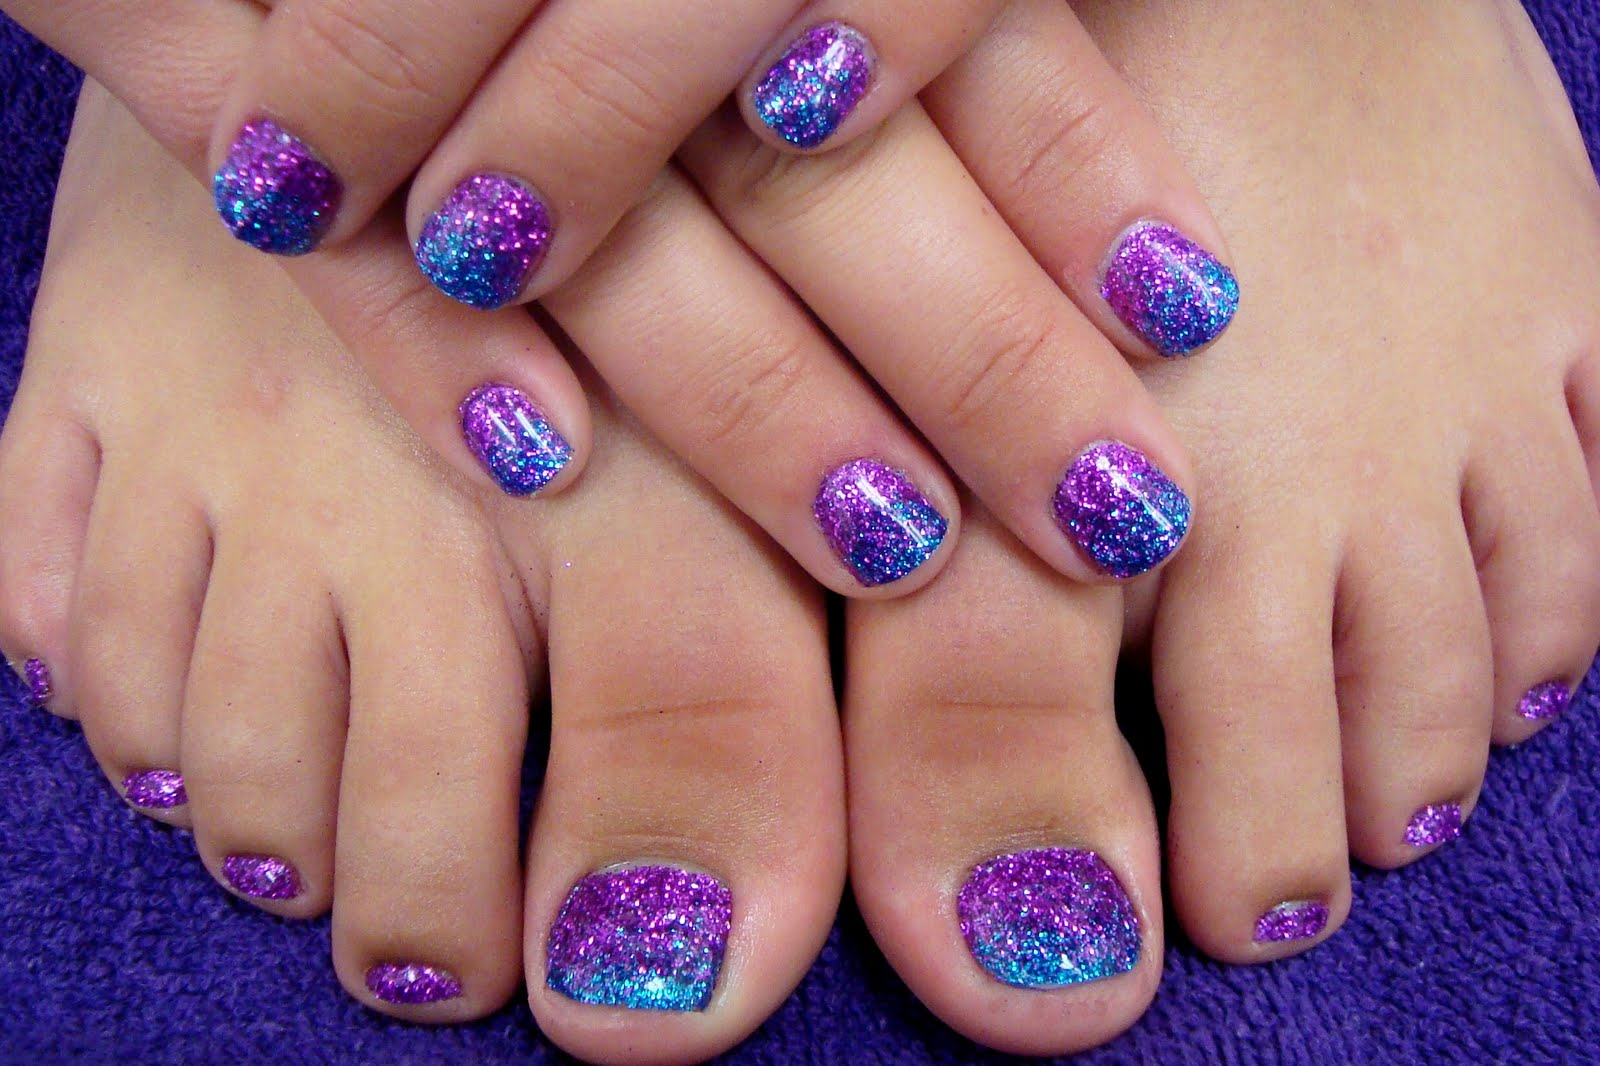 Nail Art done by professional.